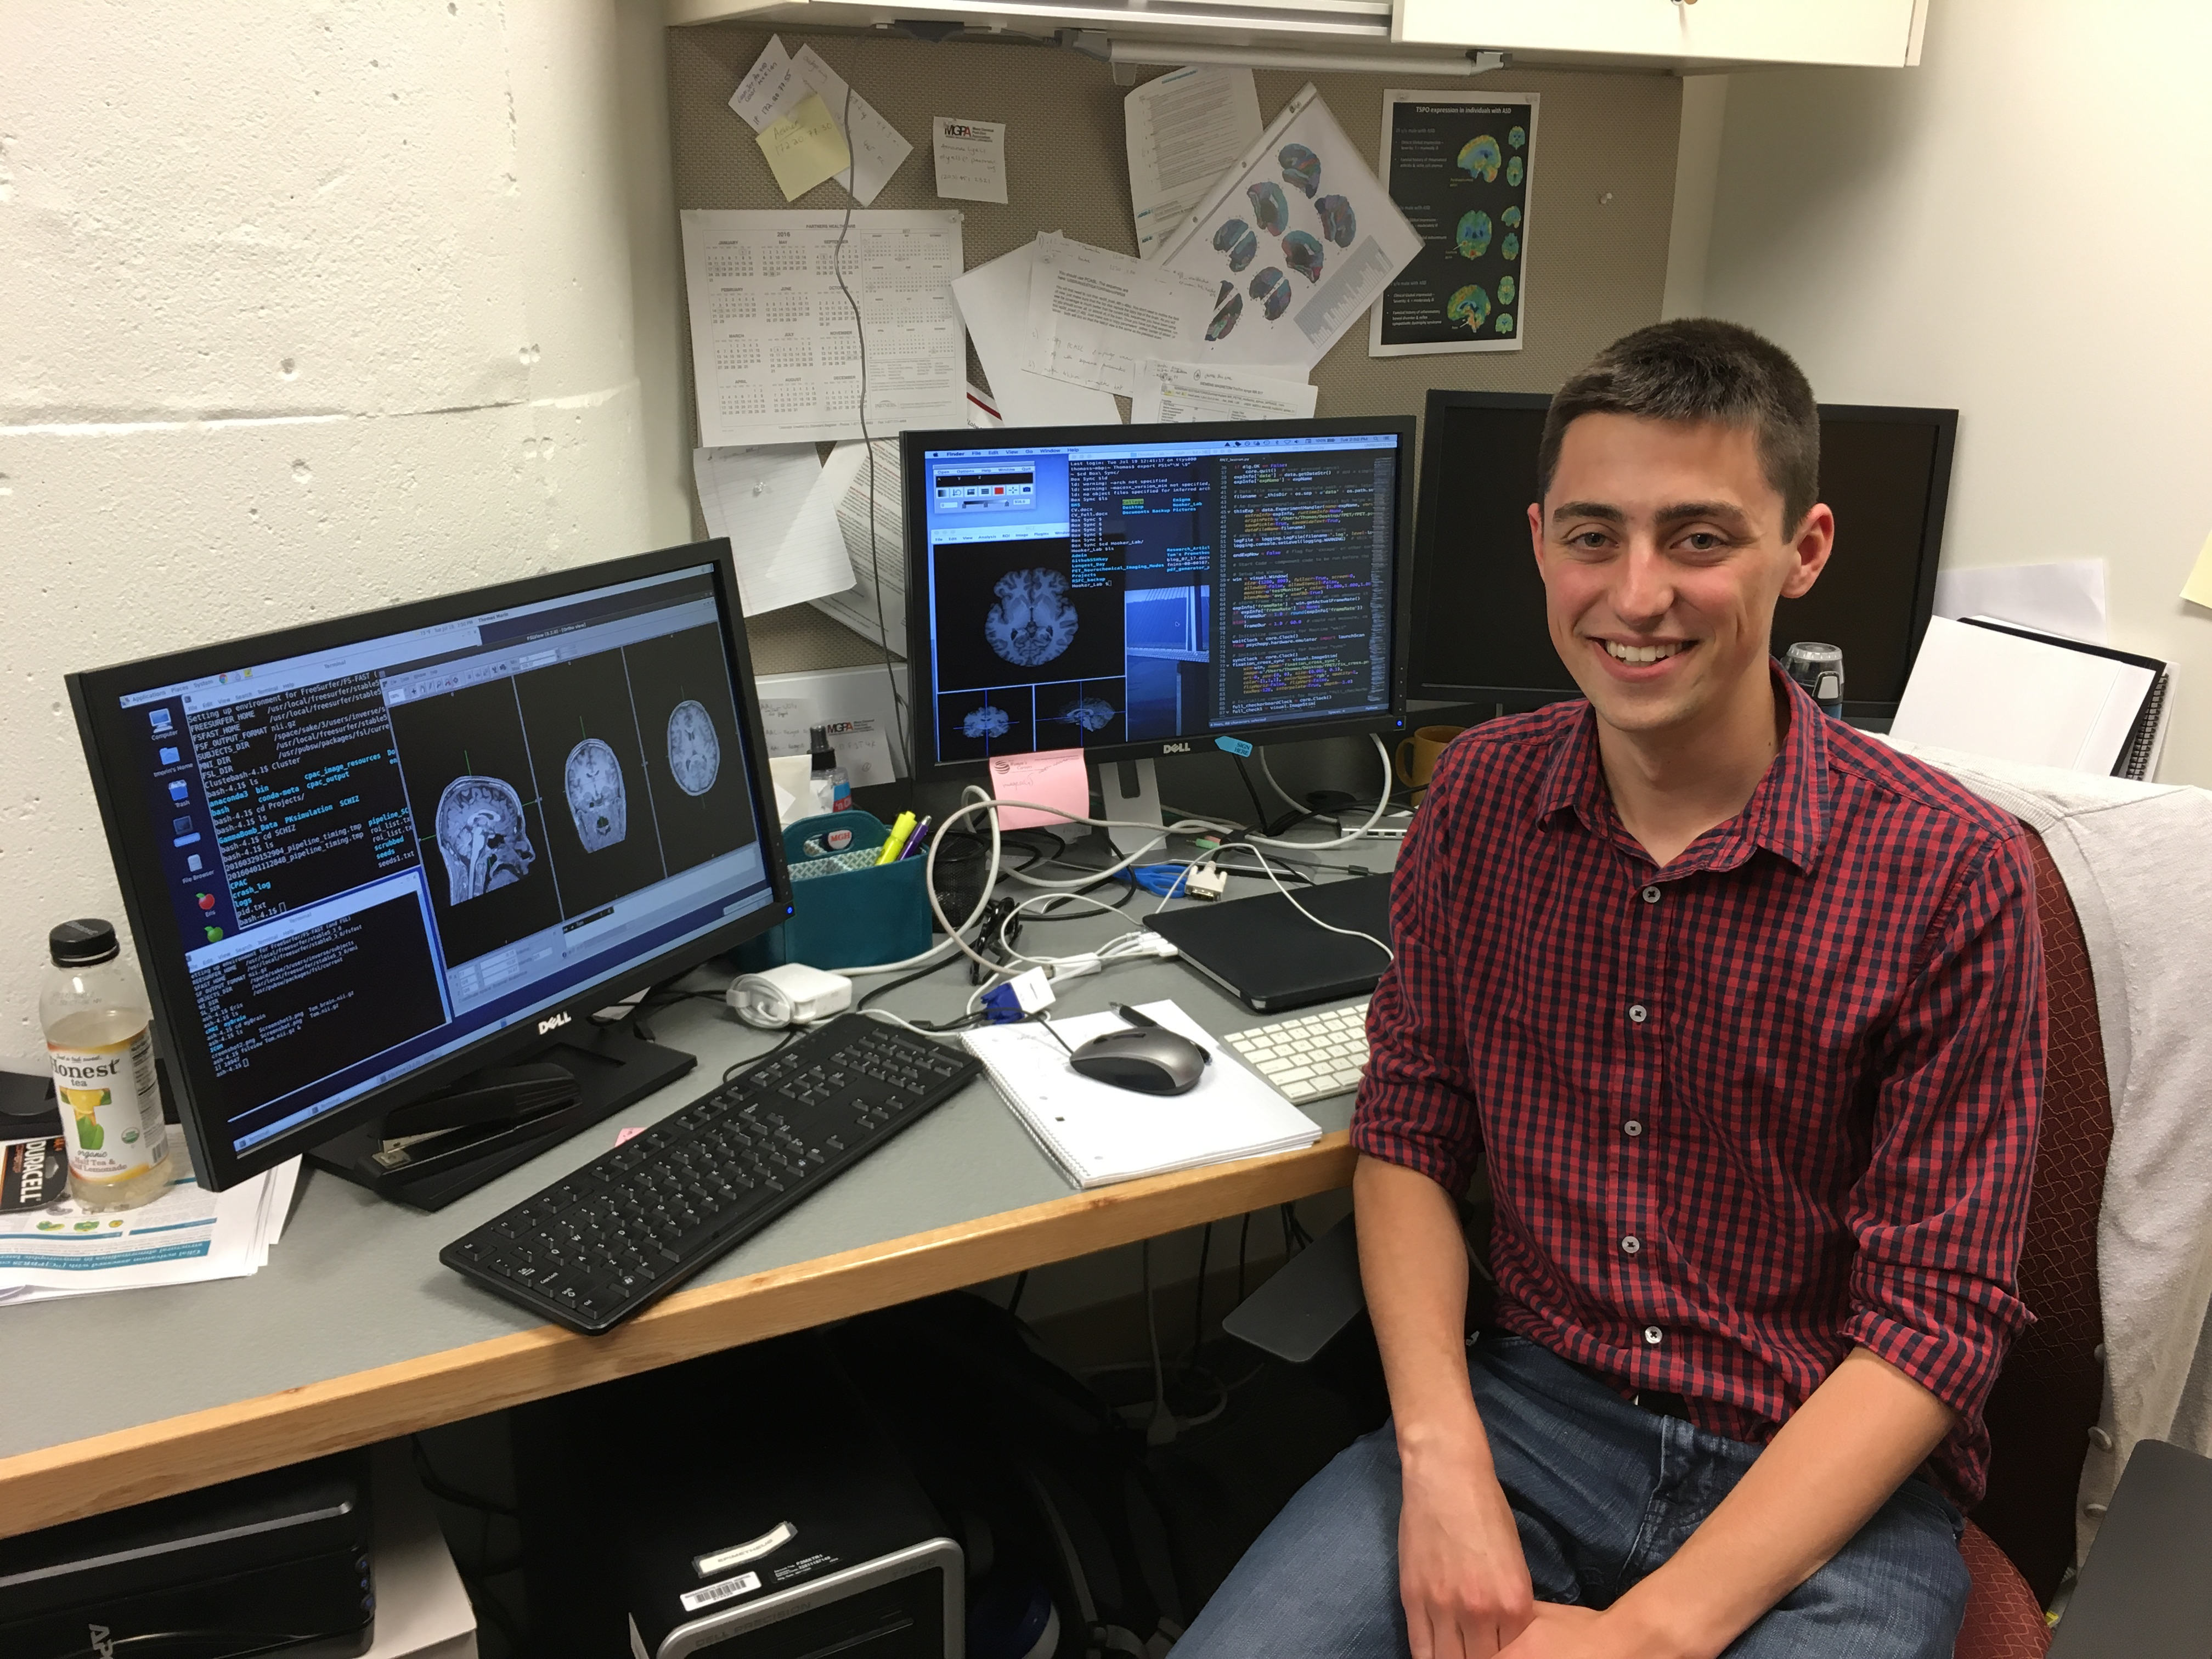 Me sitting in front of a computer in the lab I used to work at with some brain images opened up